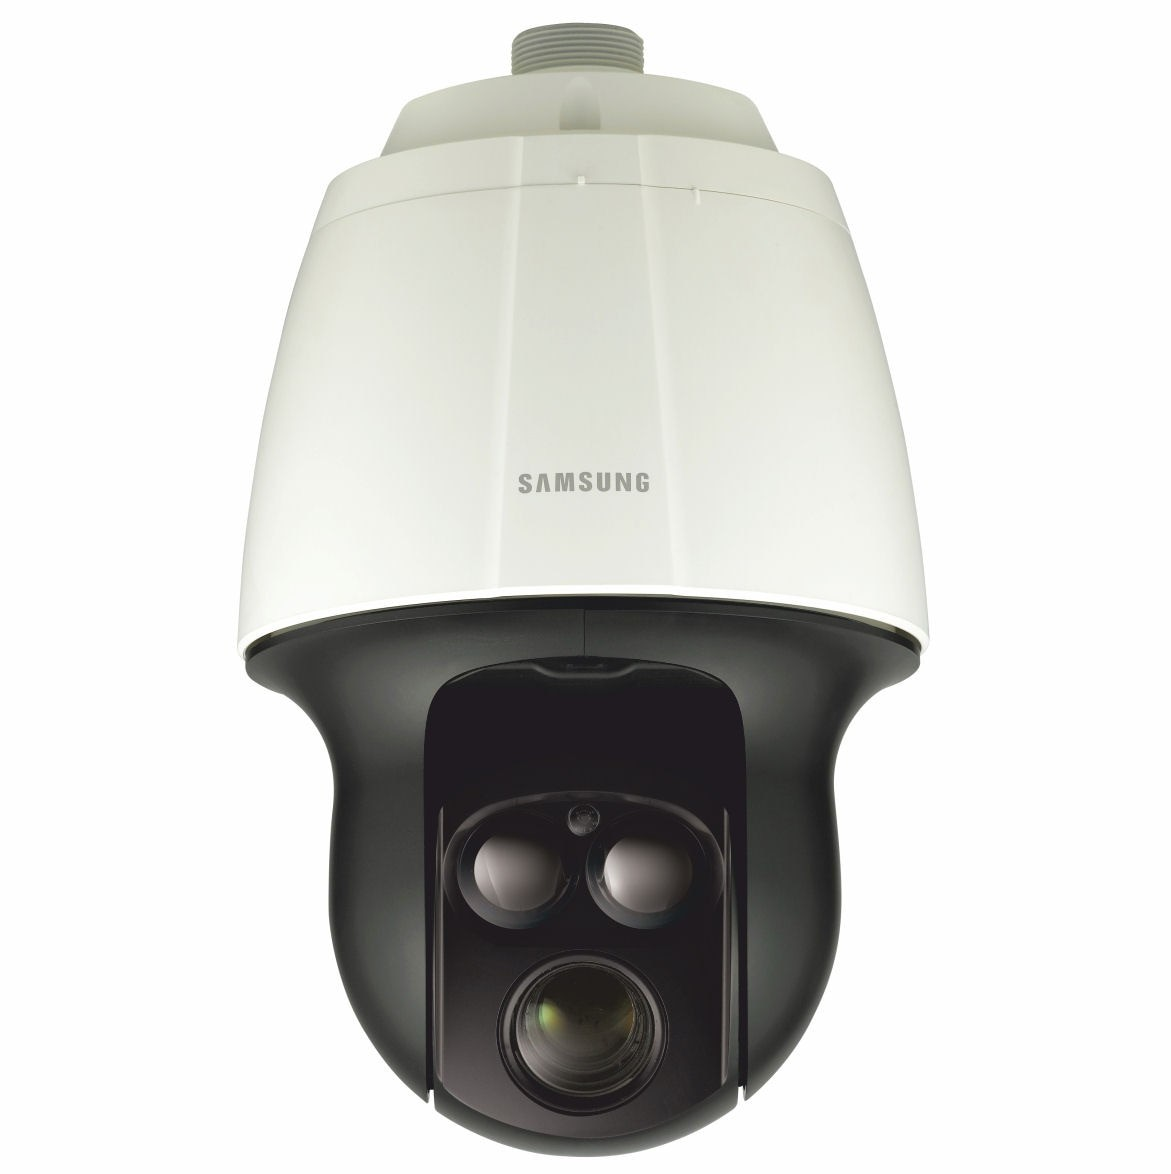 2 Megapixel Full HD 23x Network IR PTZ Dome Camera